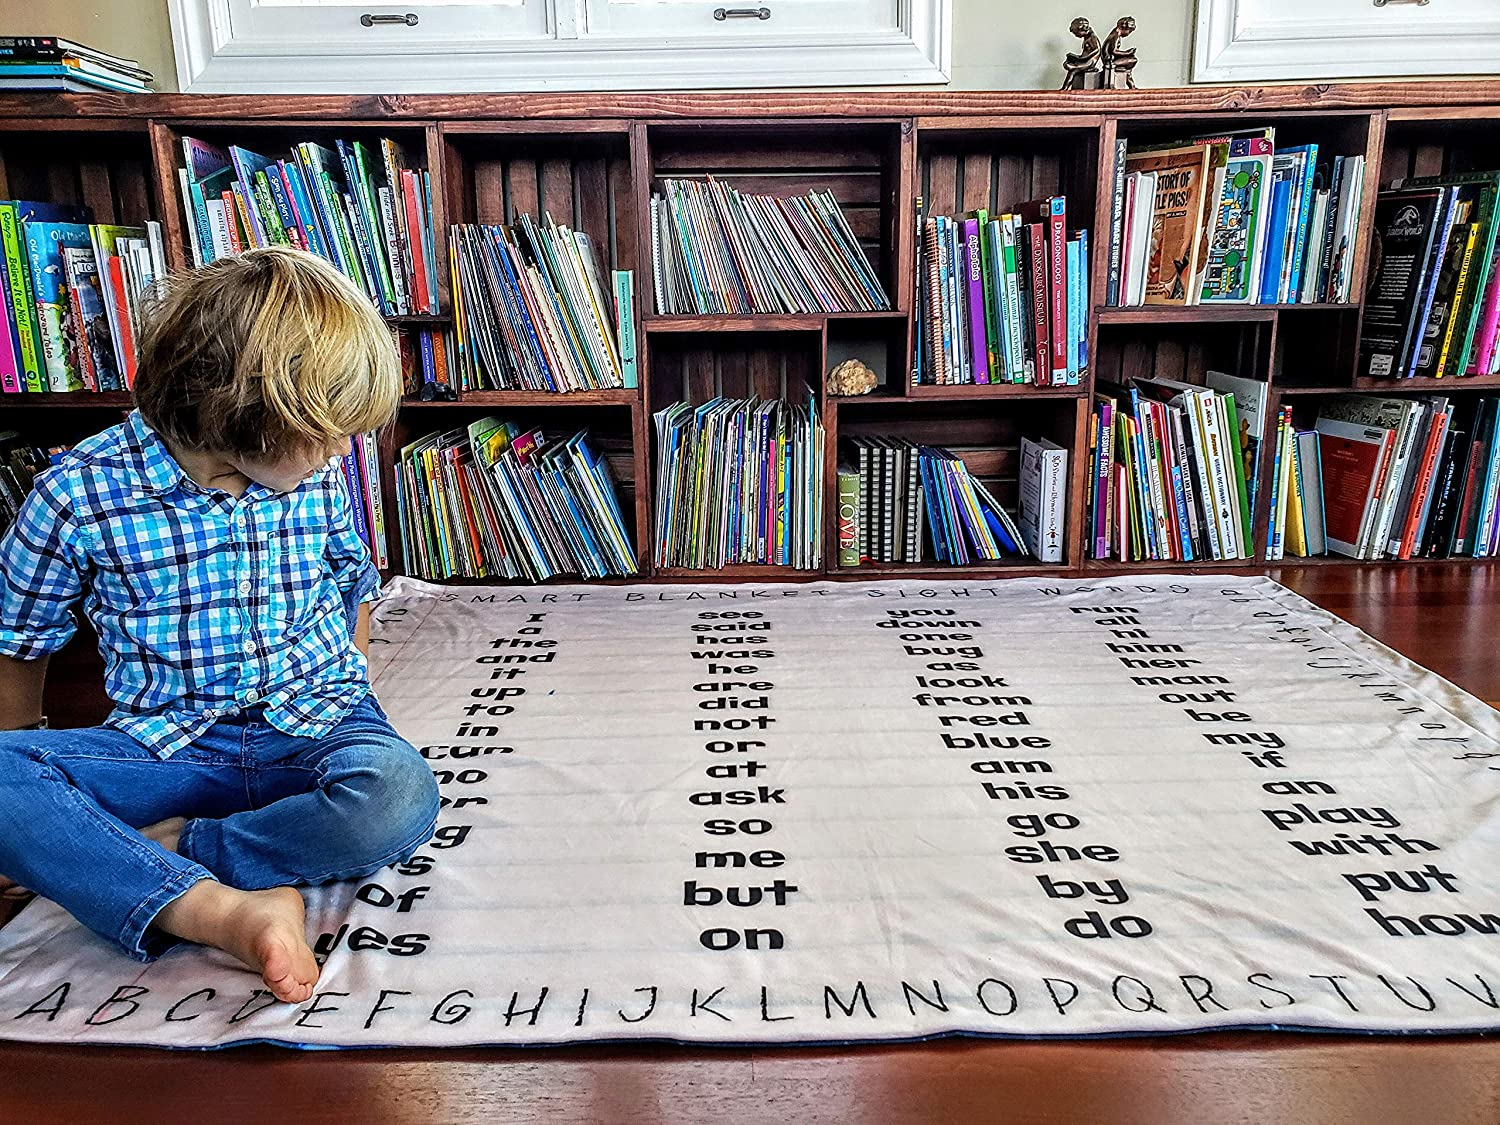 birdyboutique.com Educational Blanket Sight Words Learn How to Read Sounds Early Reader Dolch Fry List Prek Kindergarten Toddler Soft Mink for Kids Large 50x60 Double Layered